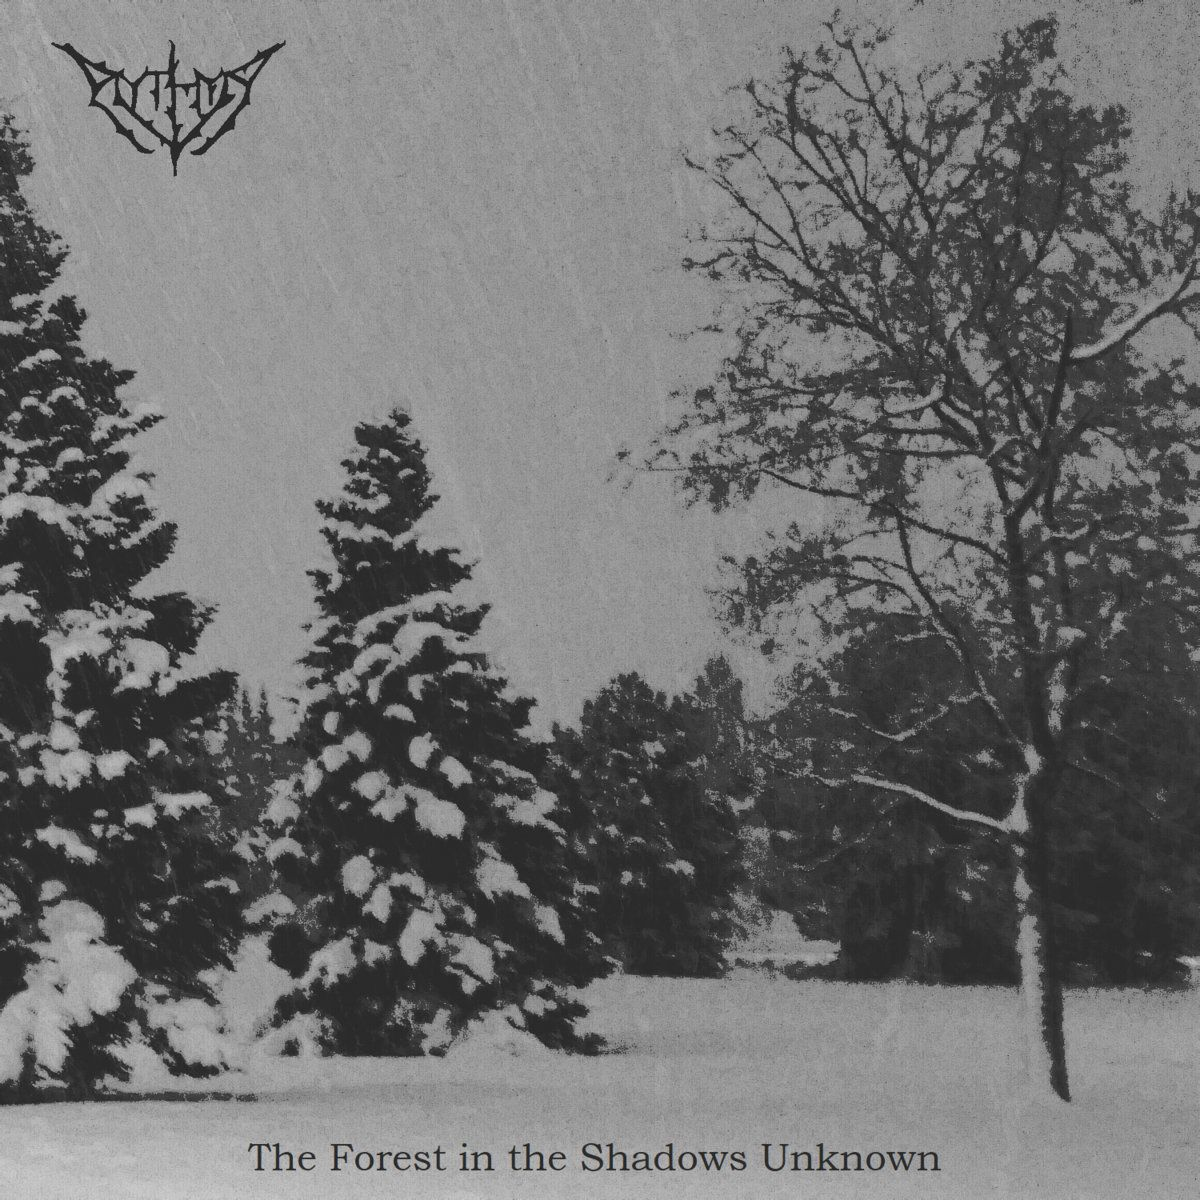 Review for Aythya - The Forest in the Shadows Unknown